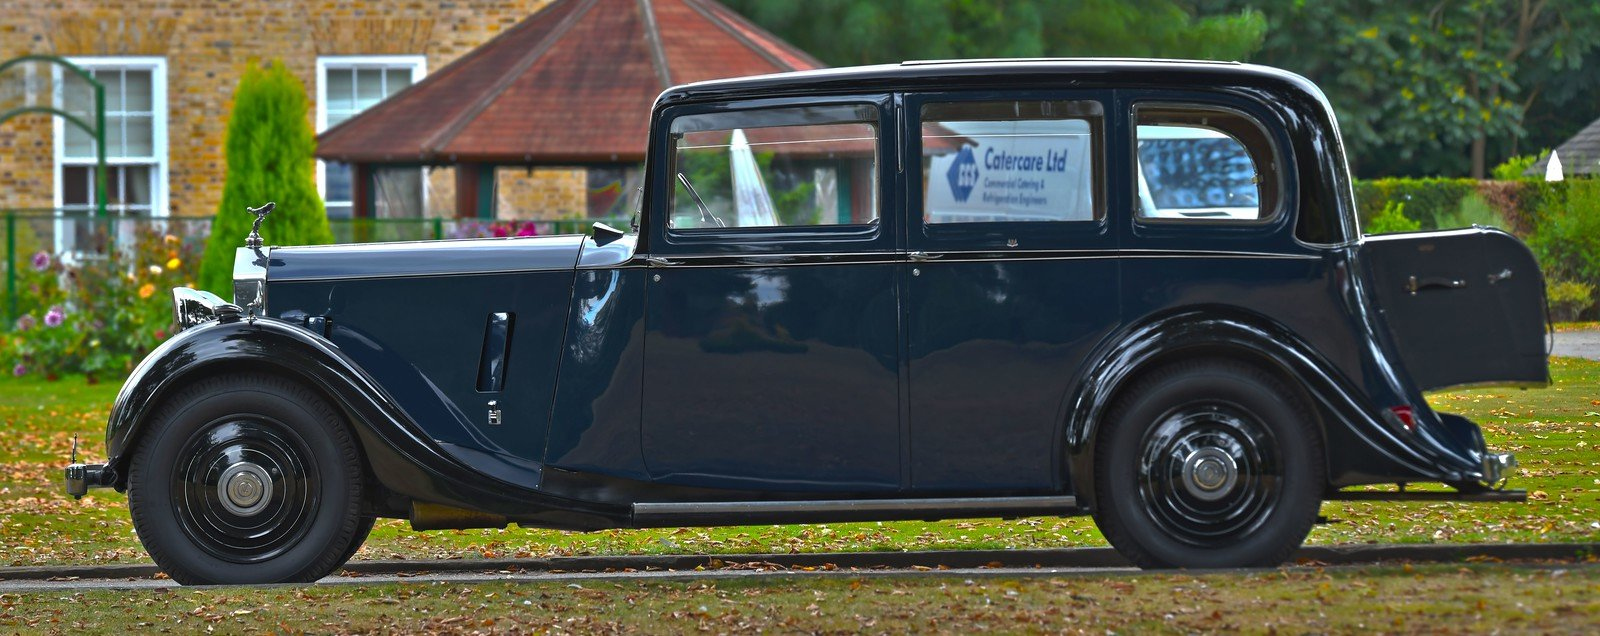 1937 Rolls-royce 25/30 Six Light Limousine Coachwork by Ripp SOLD (picture 2 of 6)